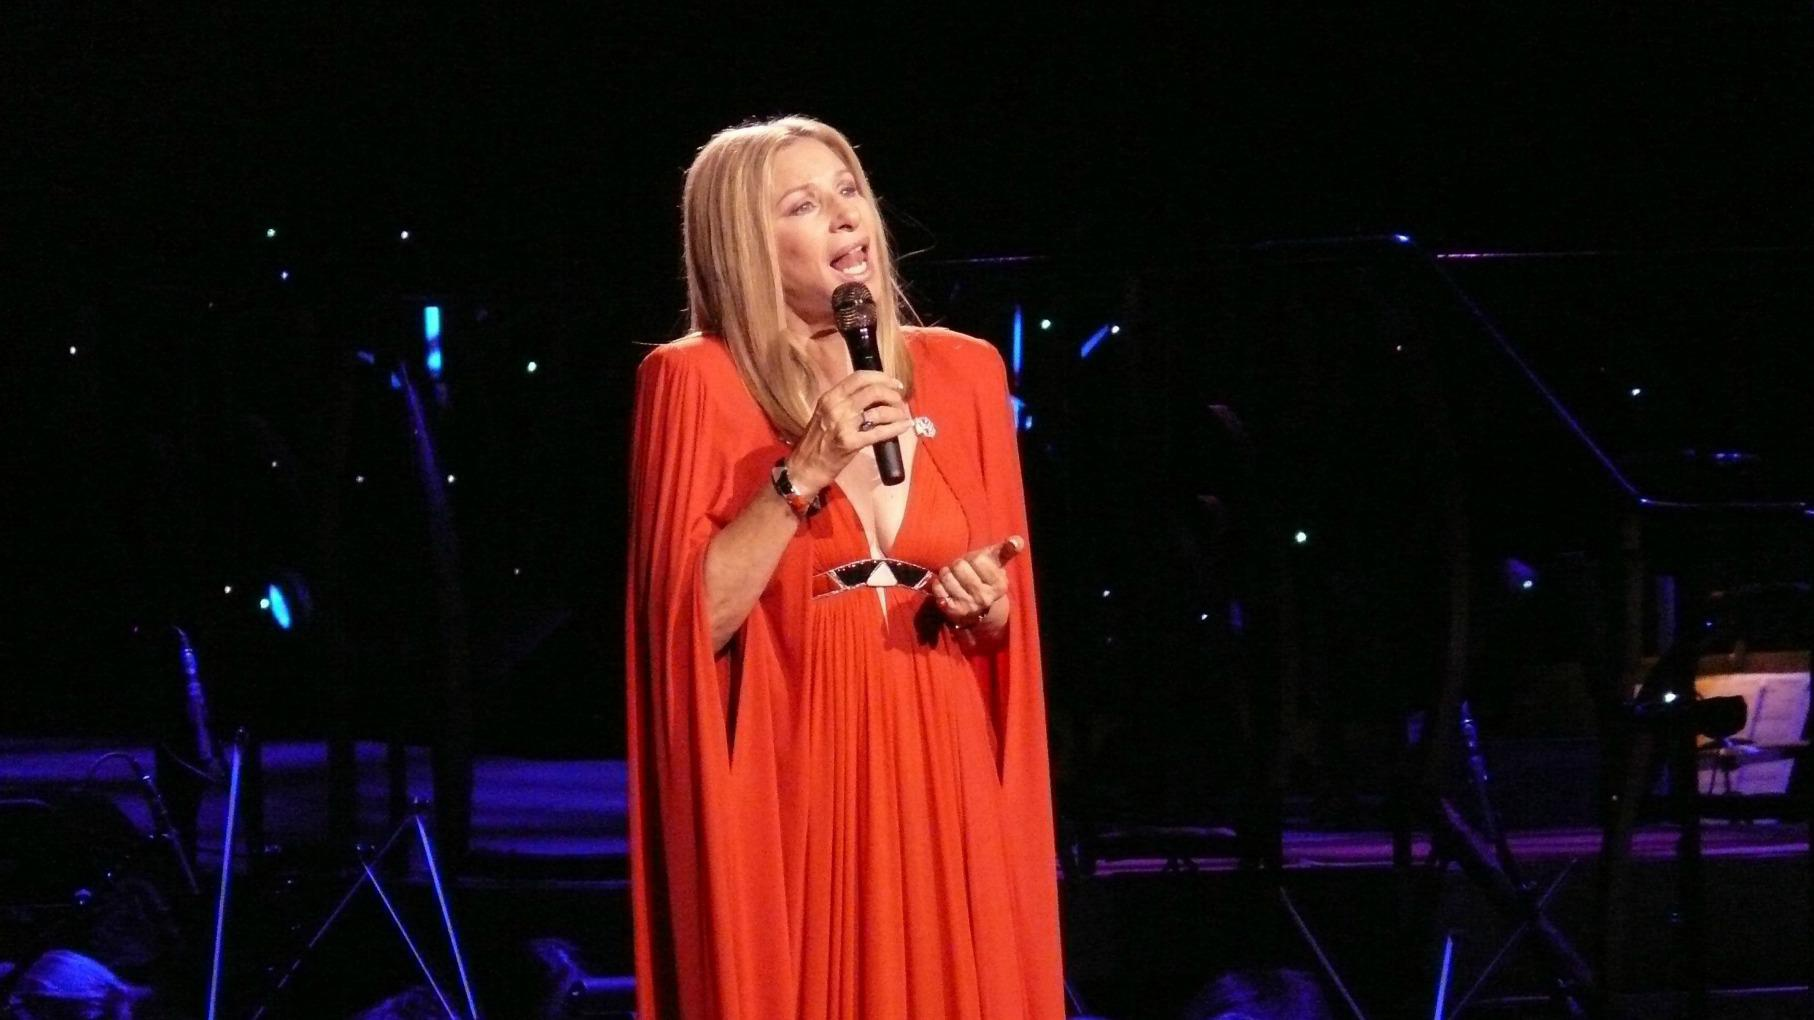 Welcome to the world of Instagram, Barbra Streisand